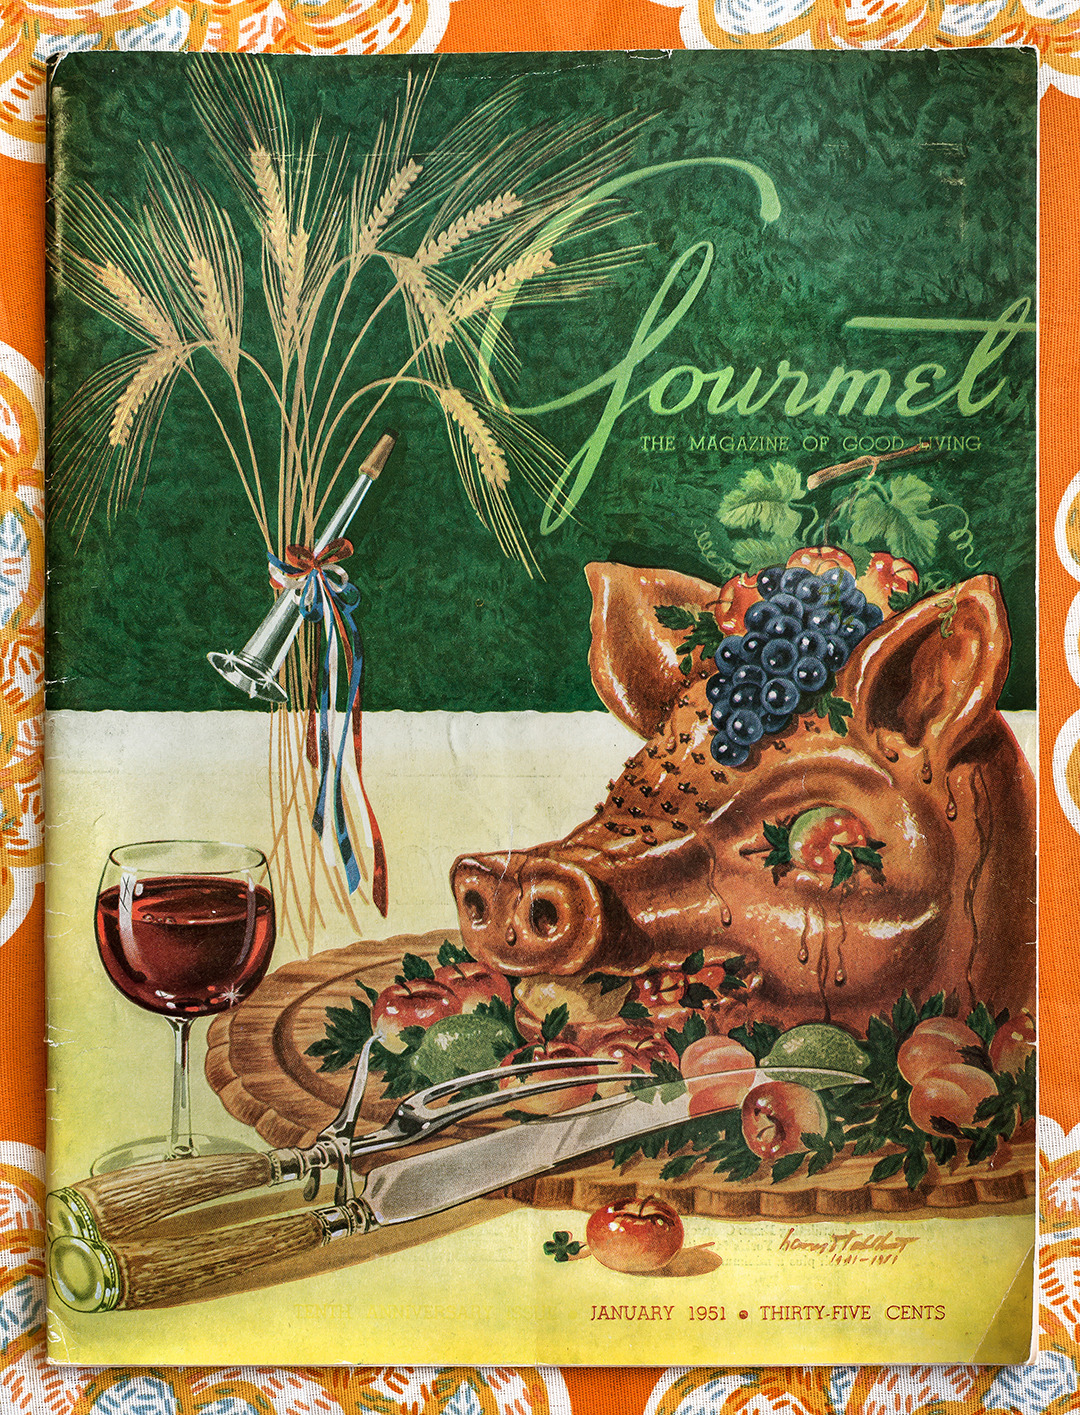 Gourmet: January 1951